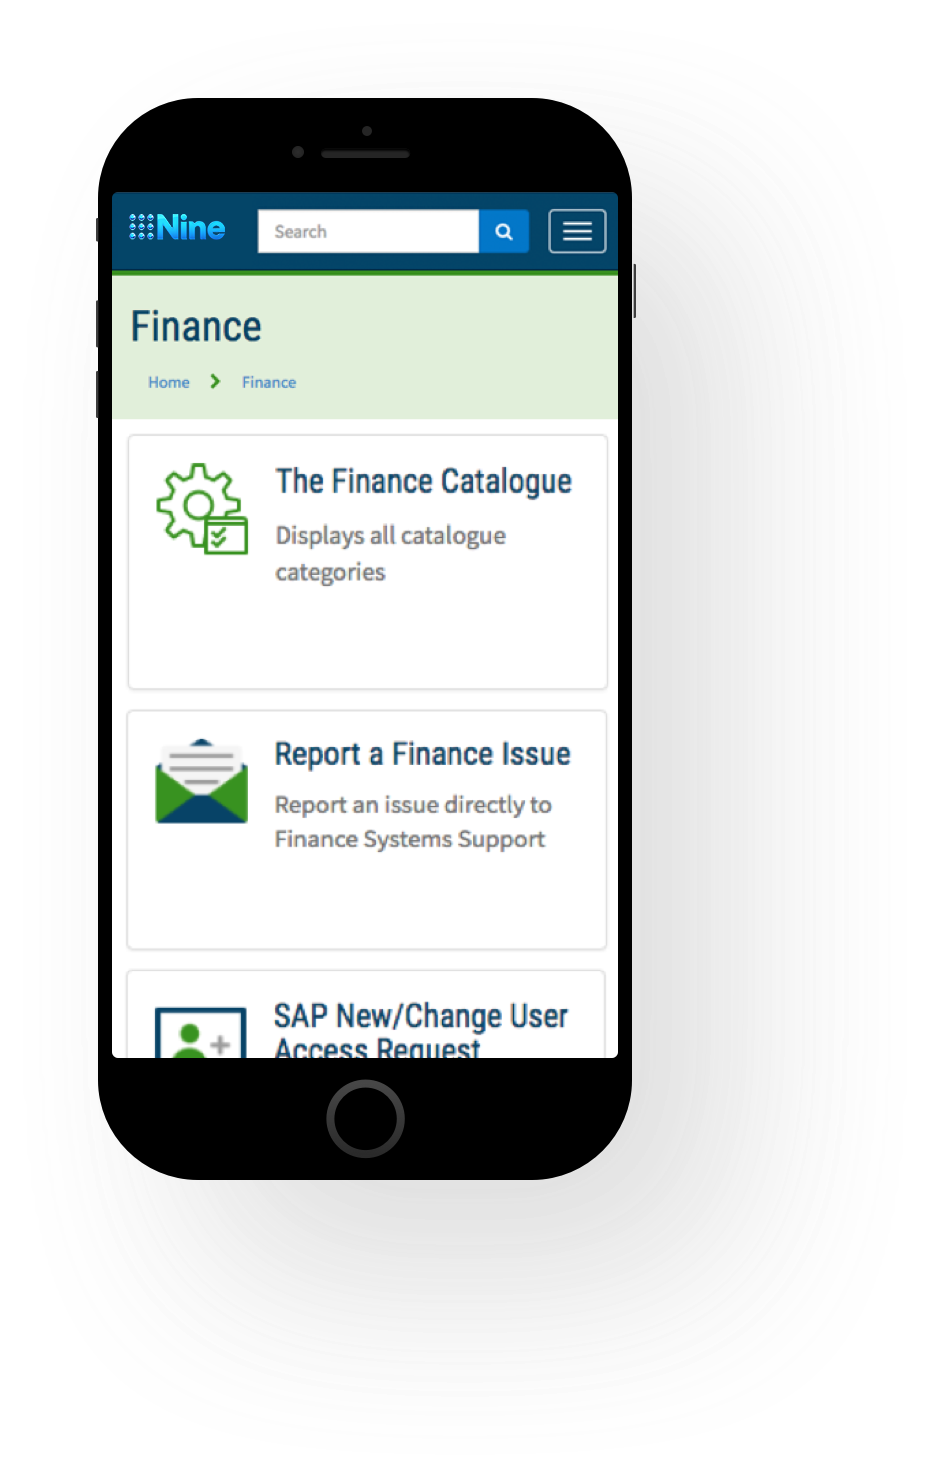 Mobile Finance Screenshot of Channel Nine ServiceNow Service Portal